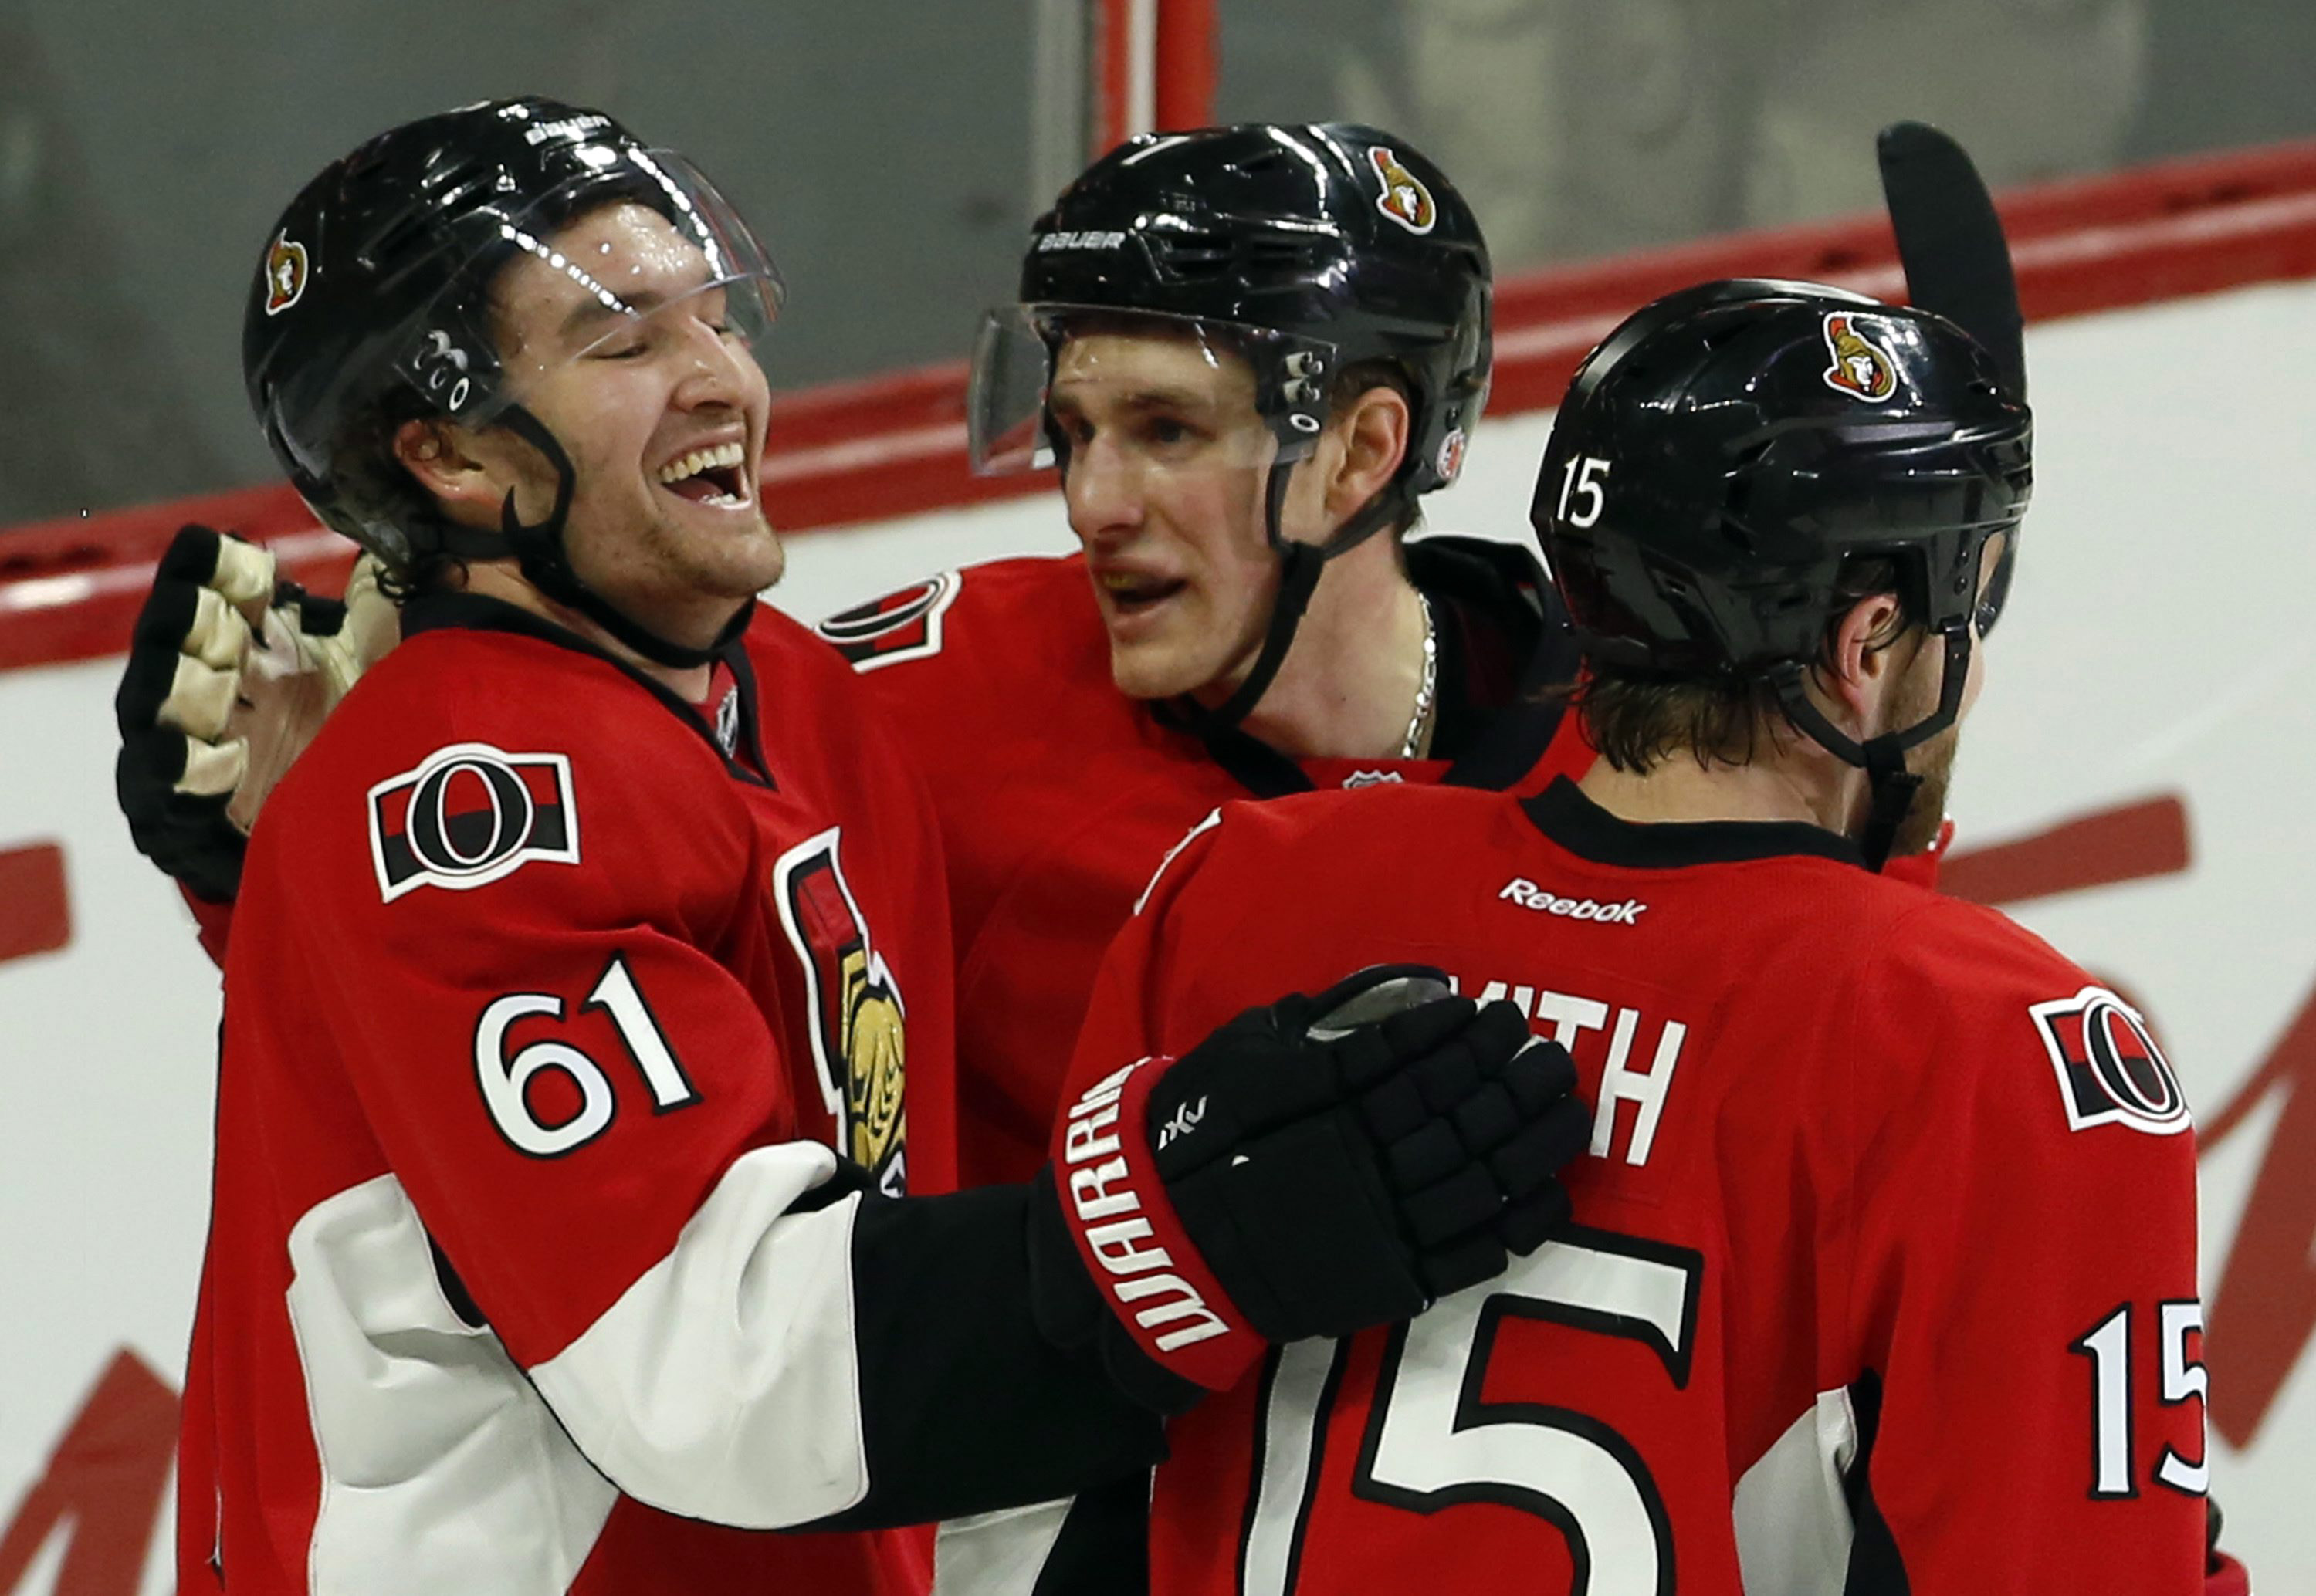 Ottawa Senators' Mark Stone (61) celebrates his goal with teammates Kyle Turris (7) and Zack Smith (15) during first period NHL hockey action against the Boston Bruins in Ottawa on Sunday, Dec. 27, 2015. (Fred Chartrand/The Canadian Press via AP)